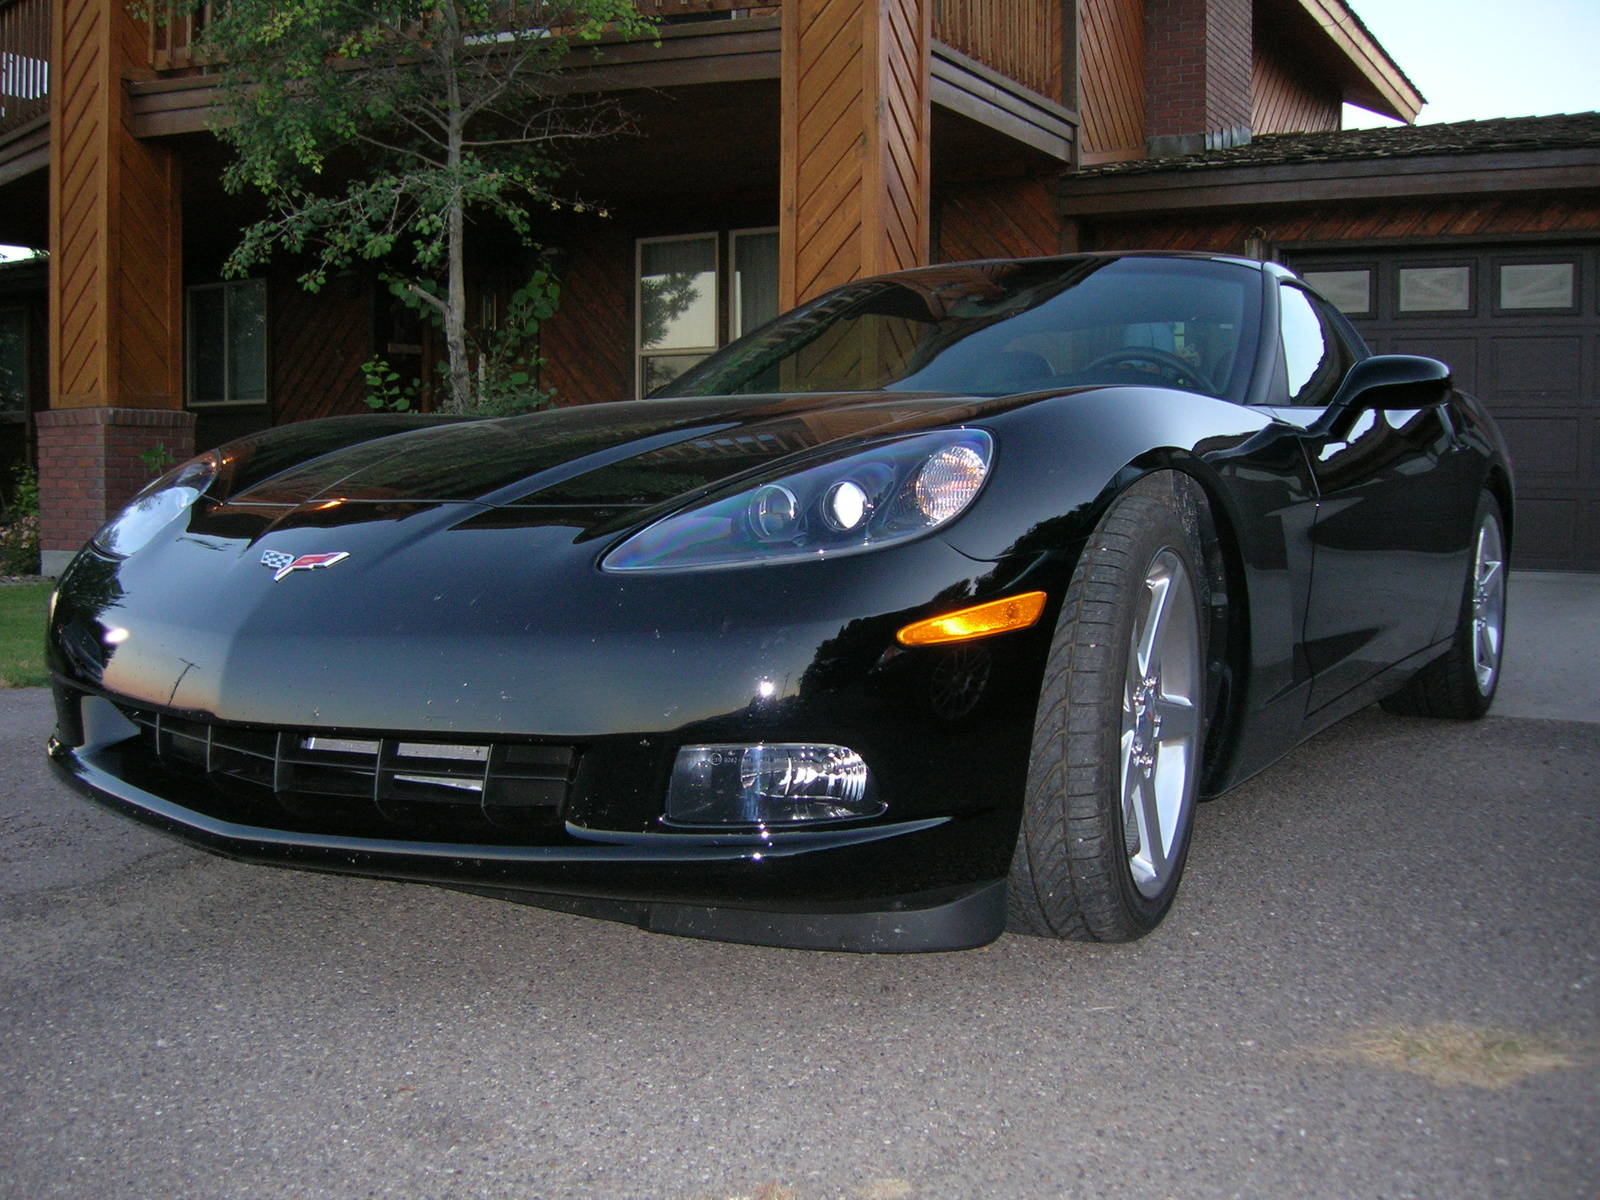 2005 Chevrolet Corvette picture, exterior